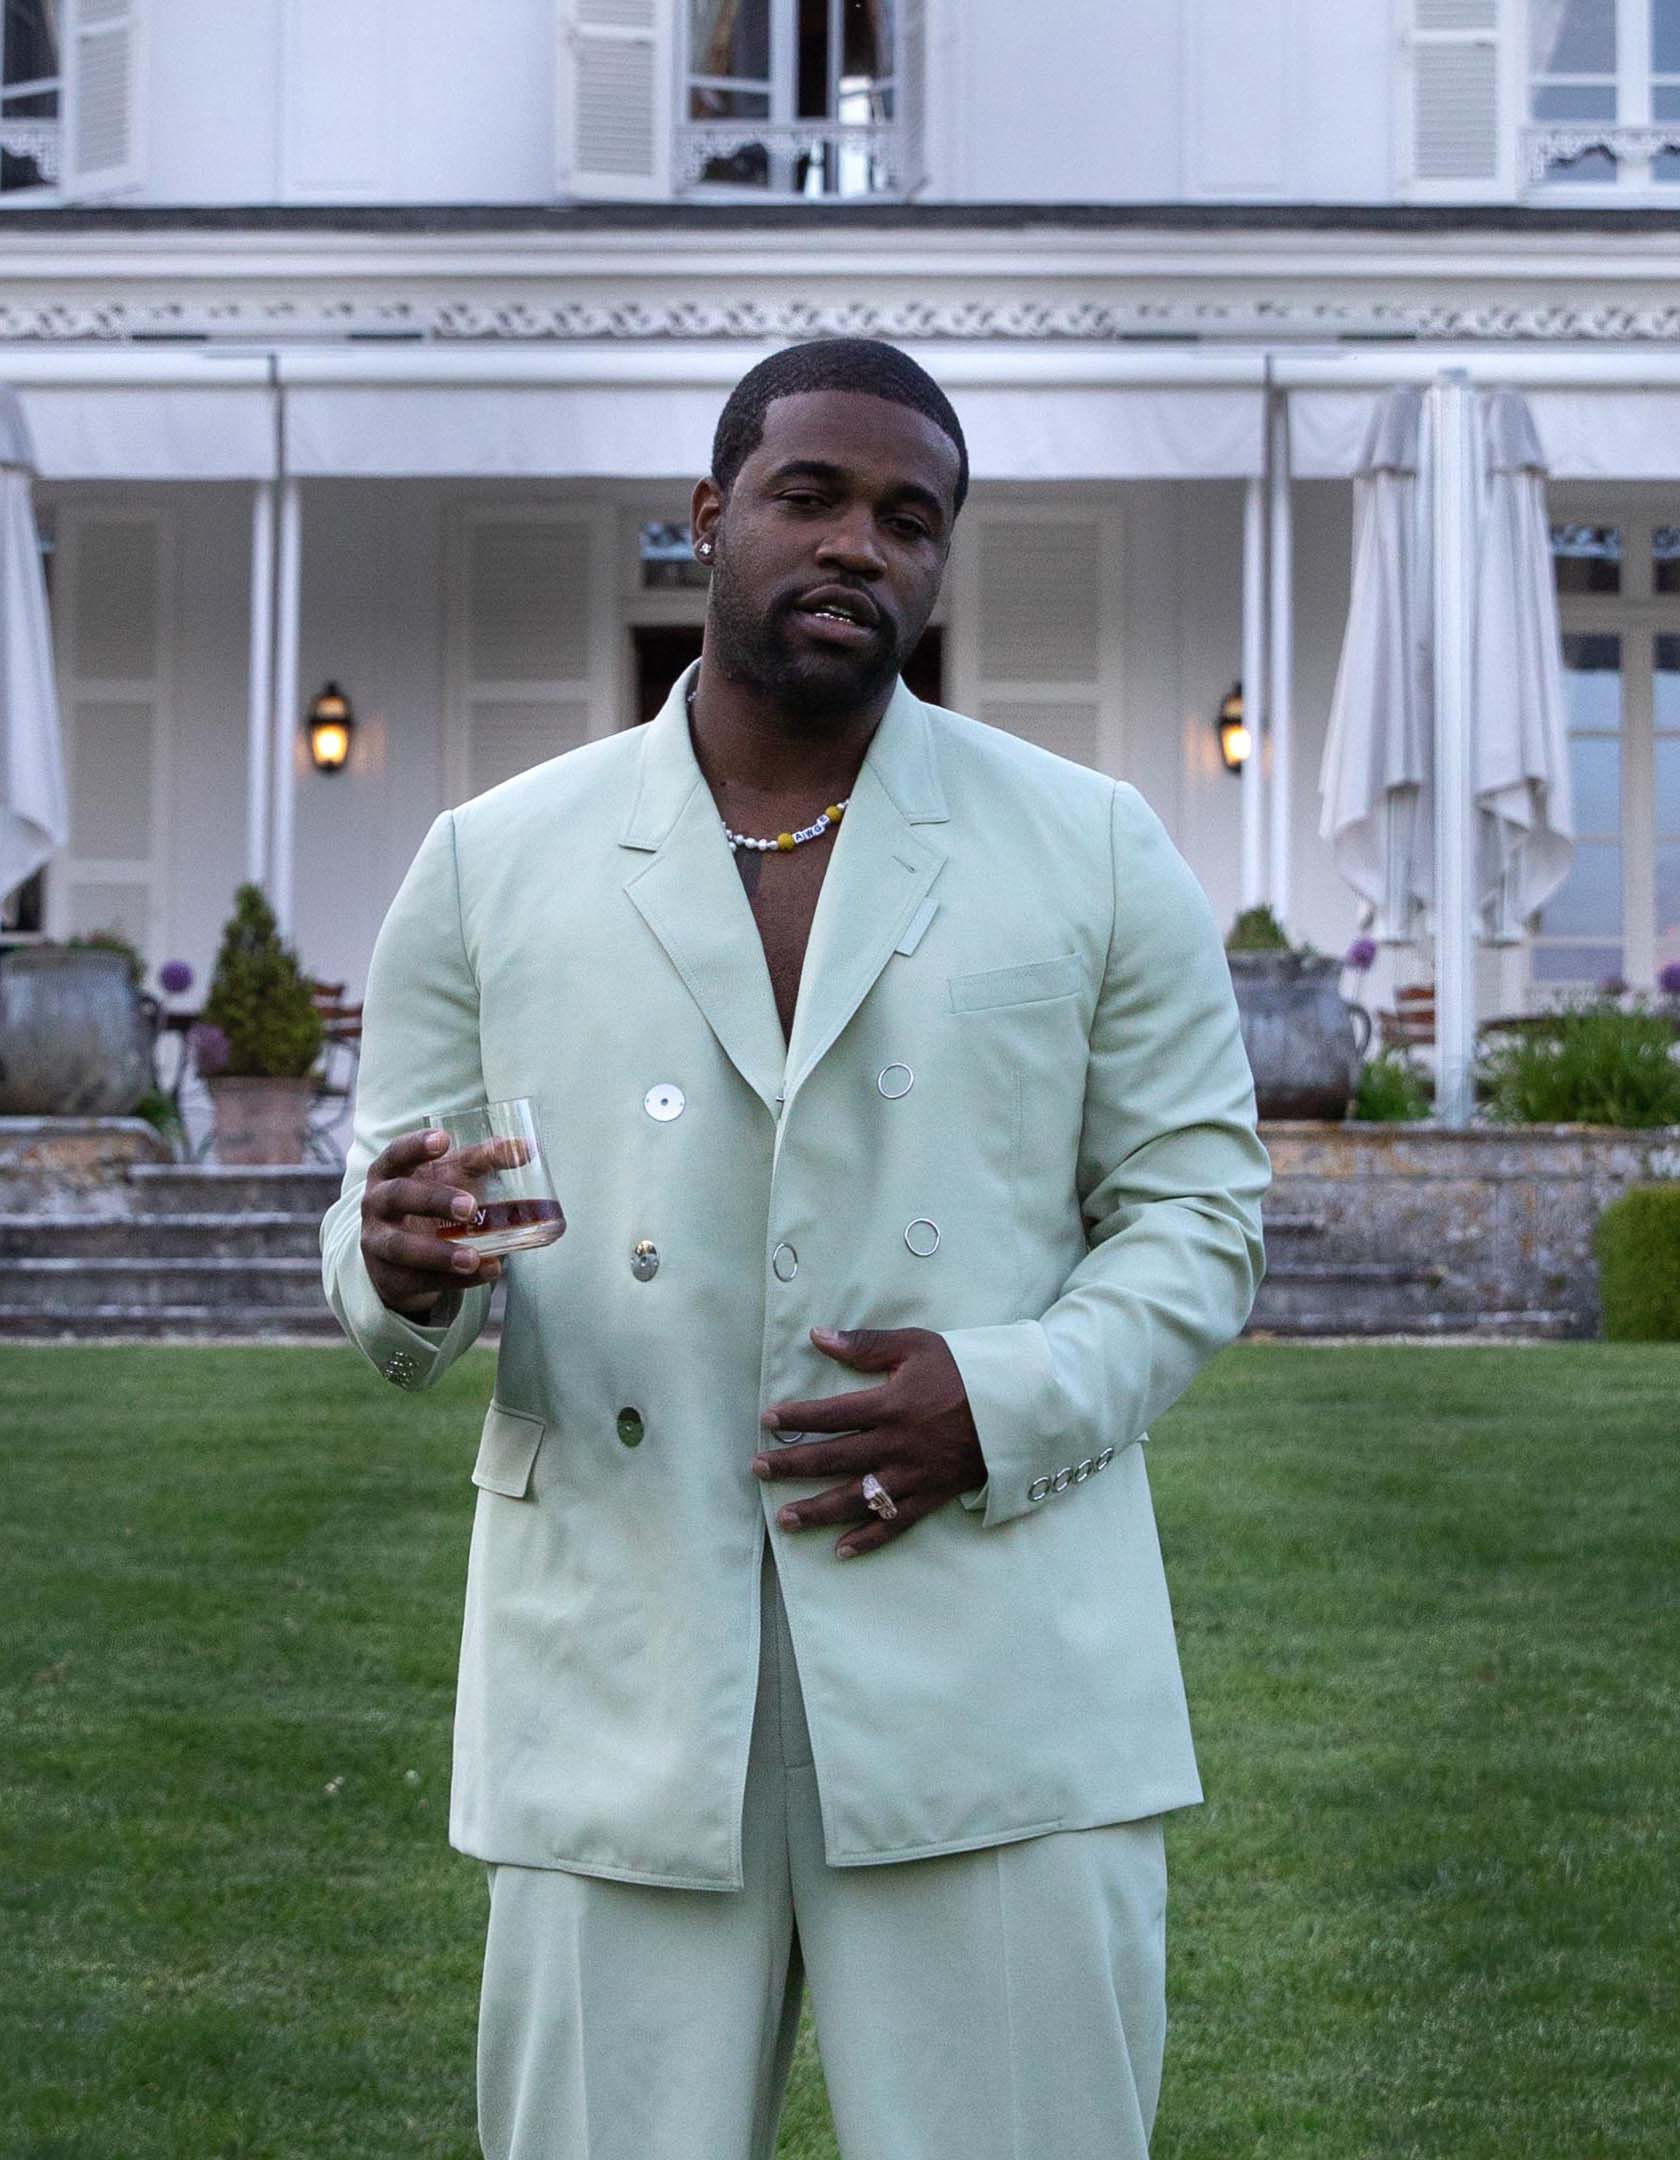 ASAP Ferg standing in front of the Hennessy Maison in Cognac, France, with a glass of Hennessy V.S neat in his hand.